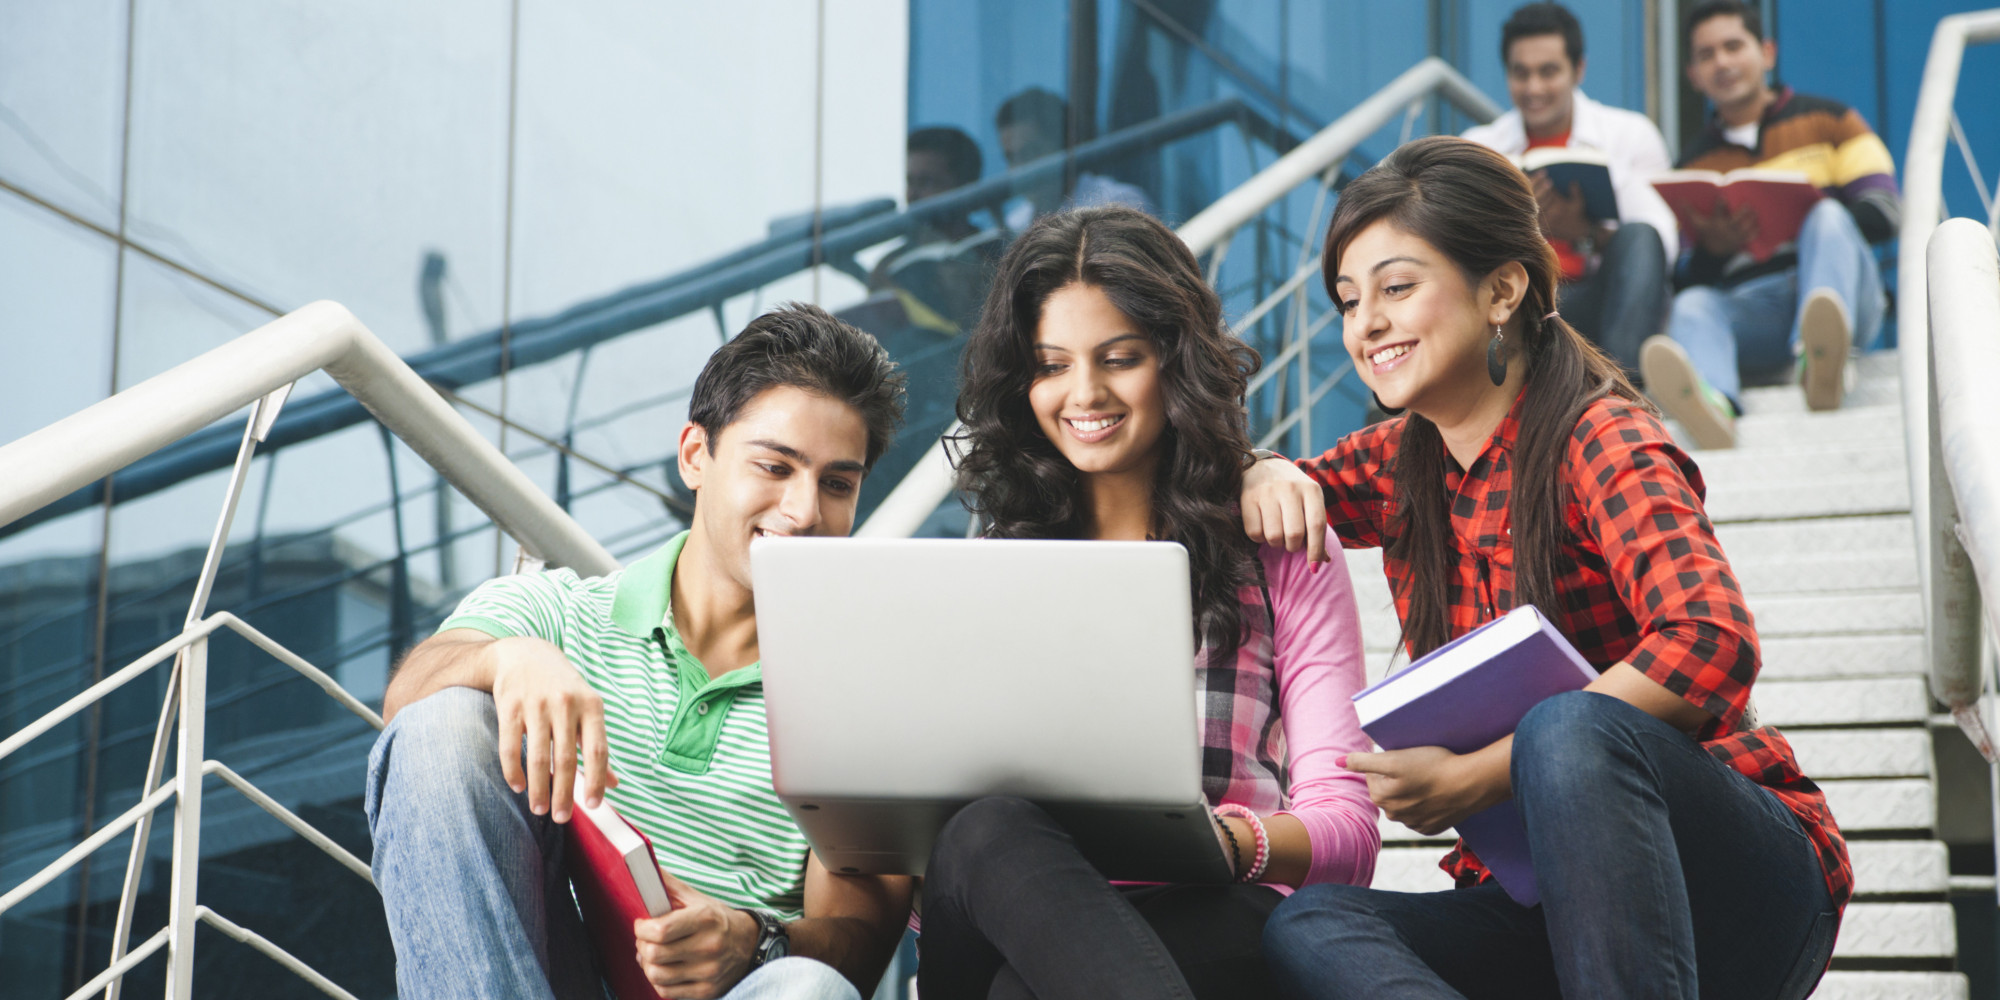 Internet Users In India Likely To Reach Up To 550 Million In 2018 Report Digital U Th